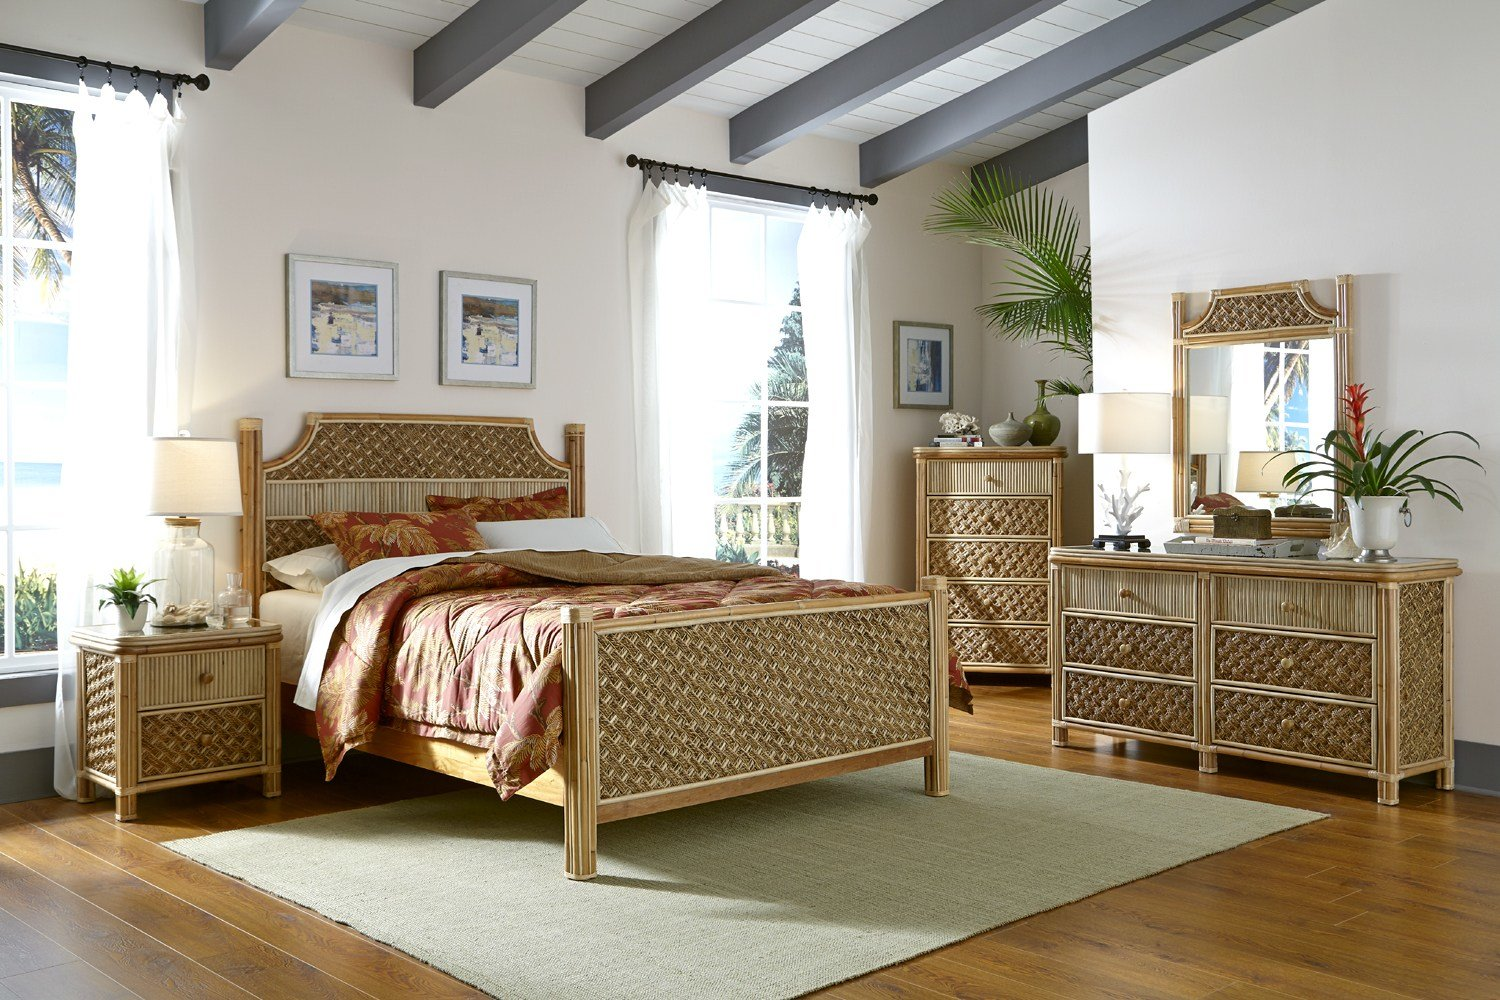 Best Mandalay Rattan 5 Pc Bedroom Queen Furniture Set By Spice With Pictures